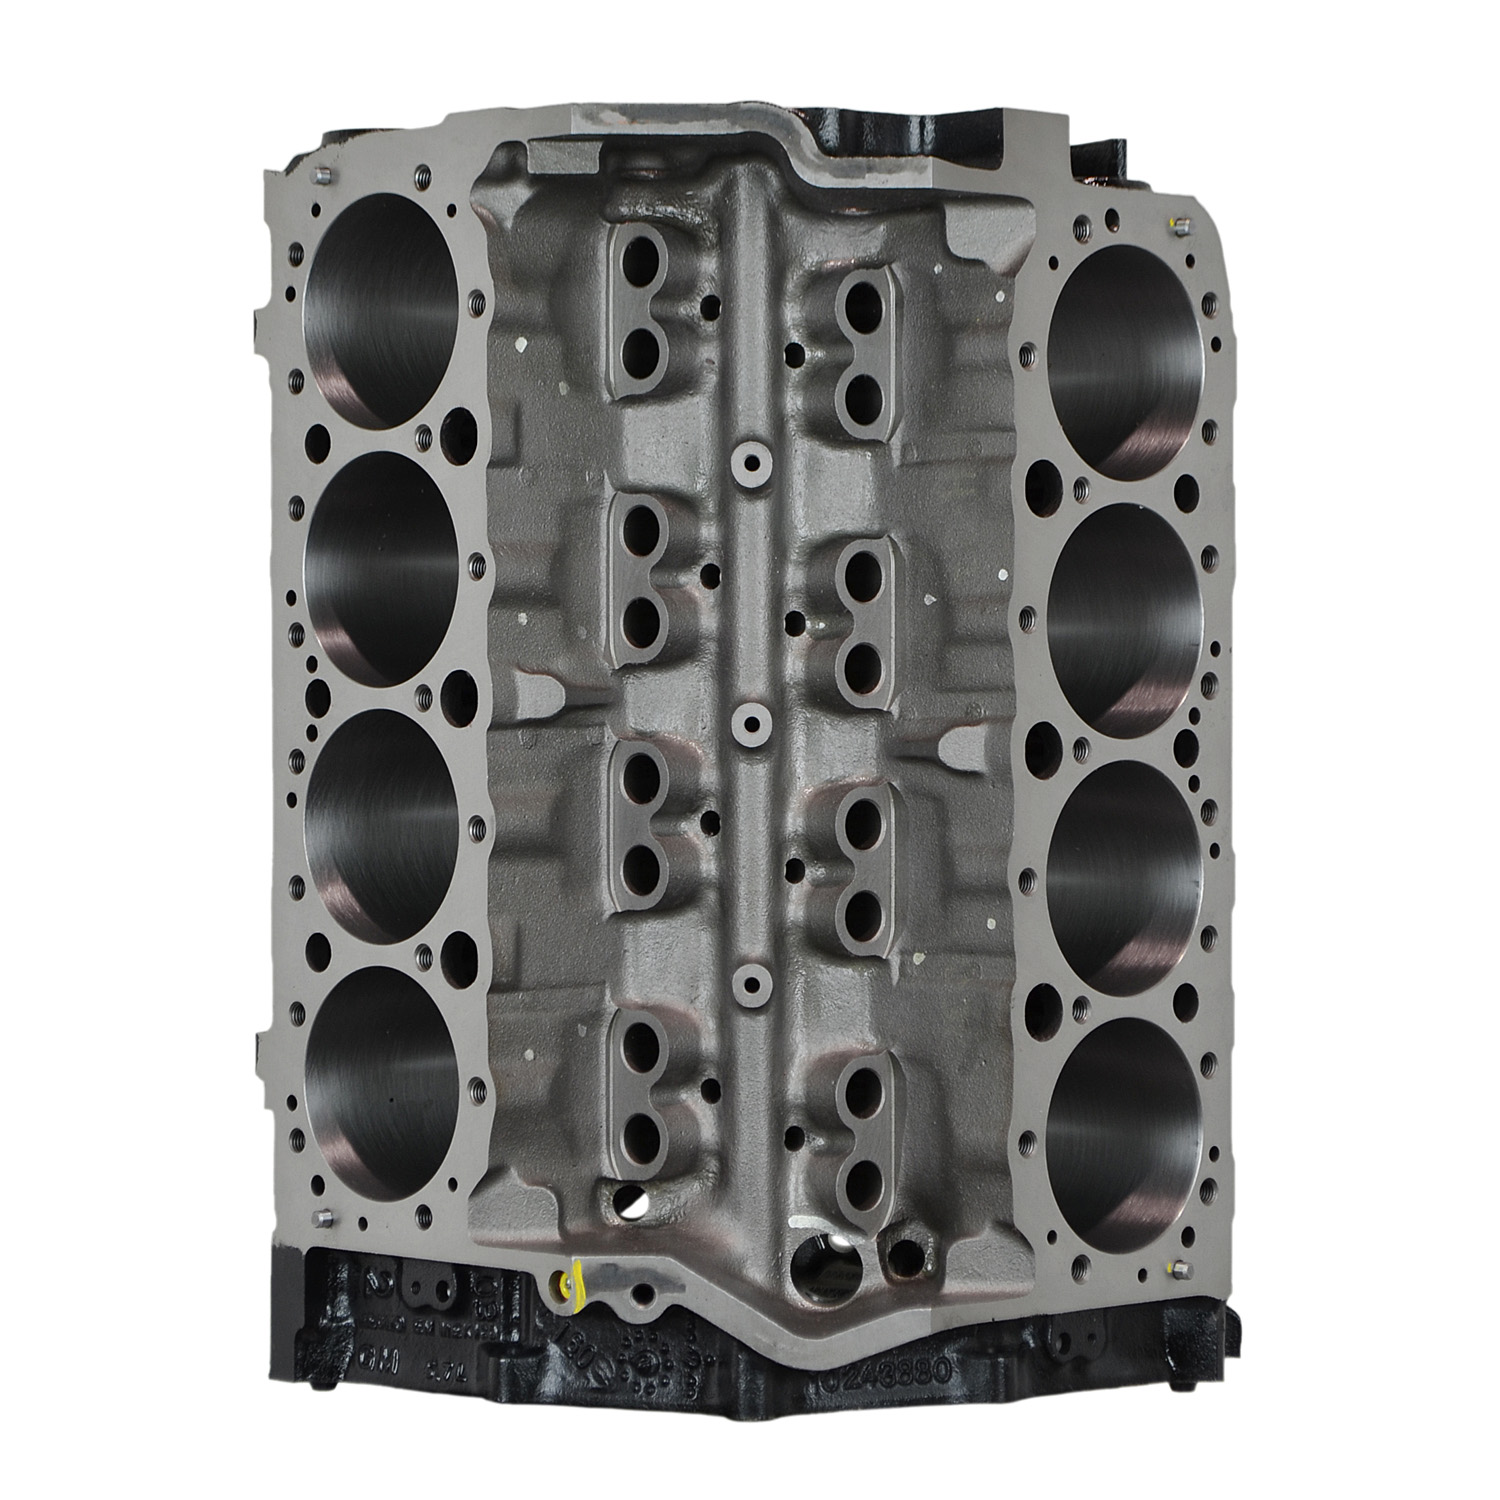 13Z6 ATK Performance Engines Engine Block  Bare Automotive